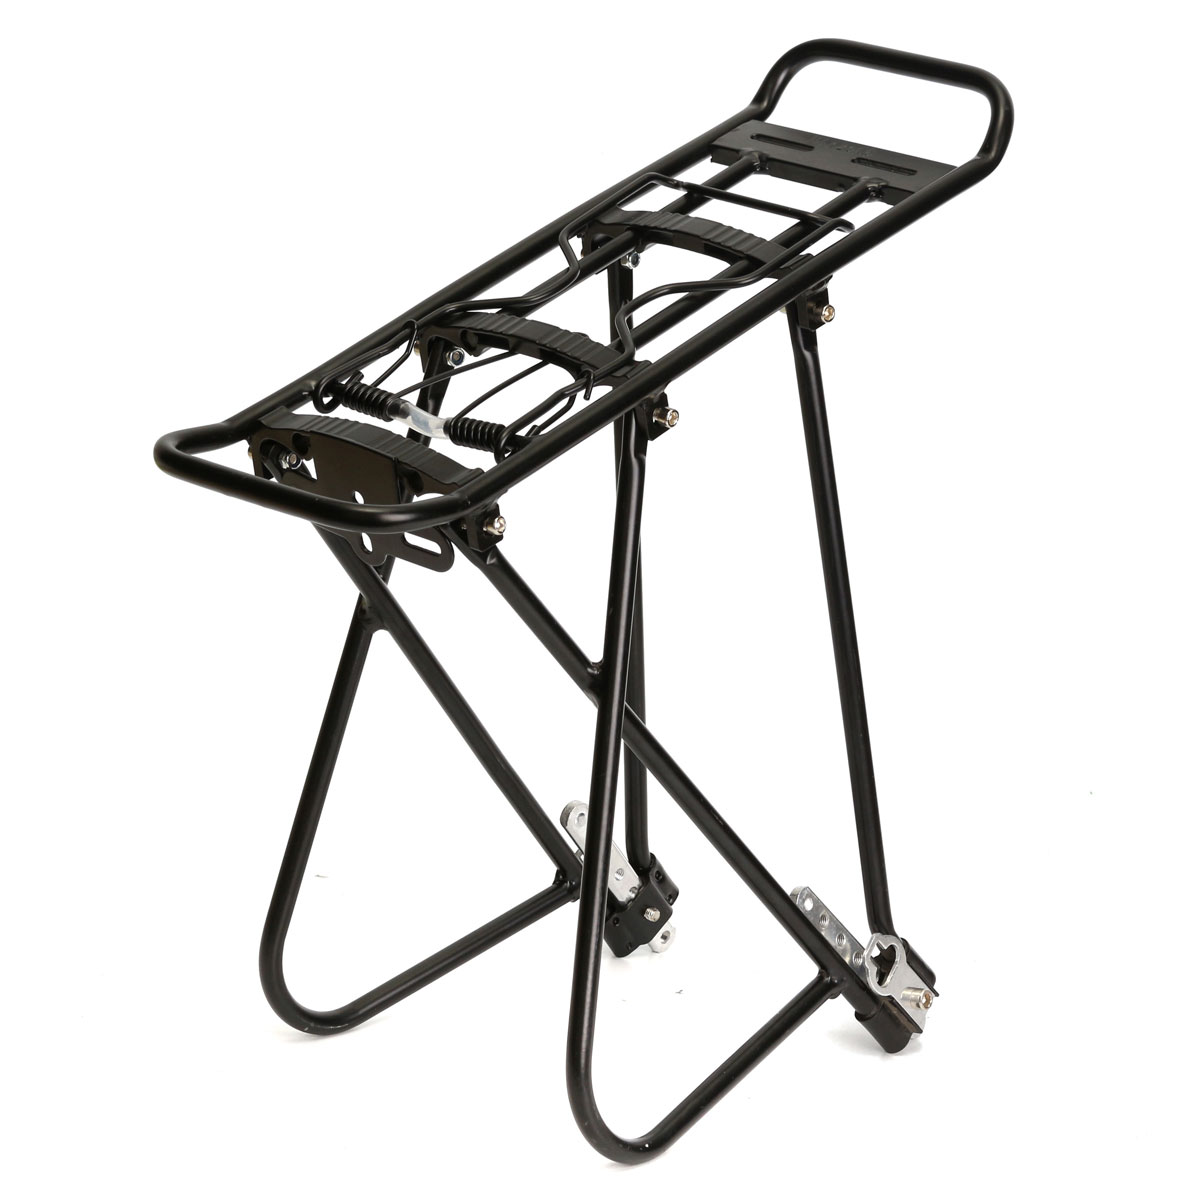 """For 24-27"""" Bike Aluminum Alloy Bicycle Racks Bicycle Luggage Carrier MTB Bicycle Mountain Bike Road Bike Rear Rack Cycling Accessories"""